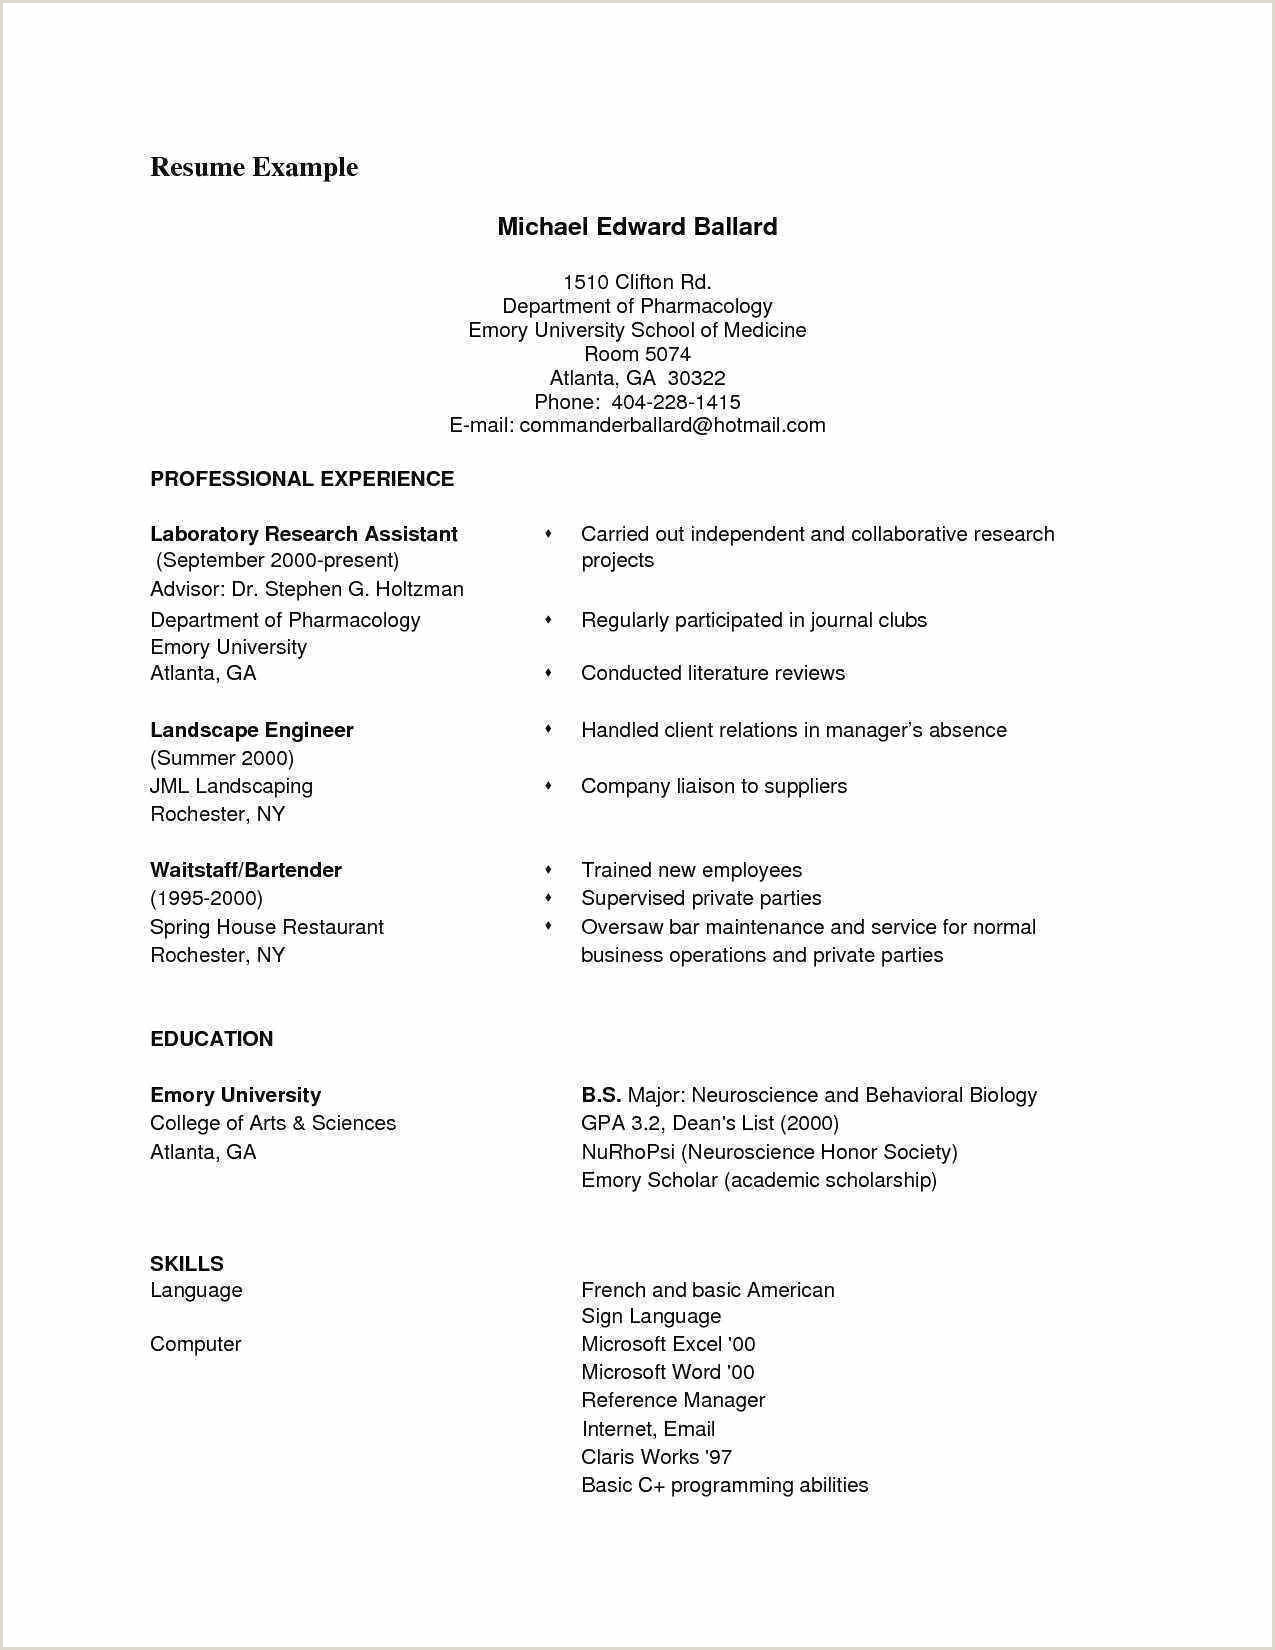 Cv Format For Job In Word Simple Resume Layout Sample Download Latest Resume Format